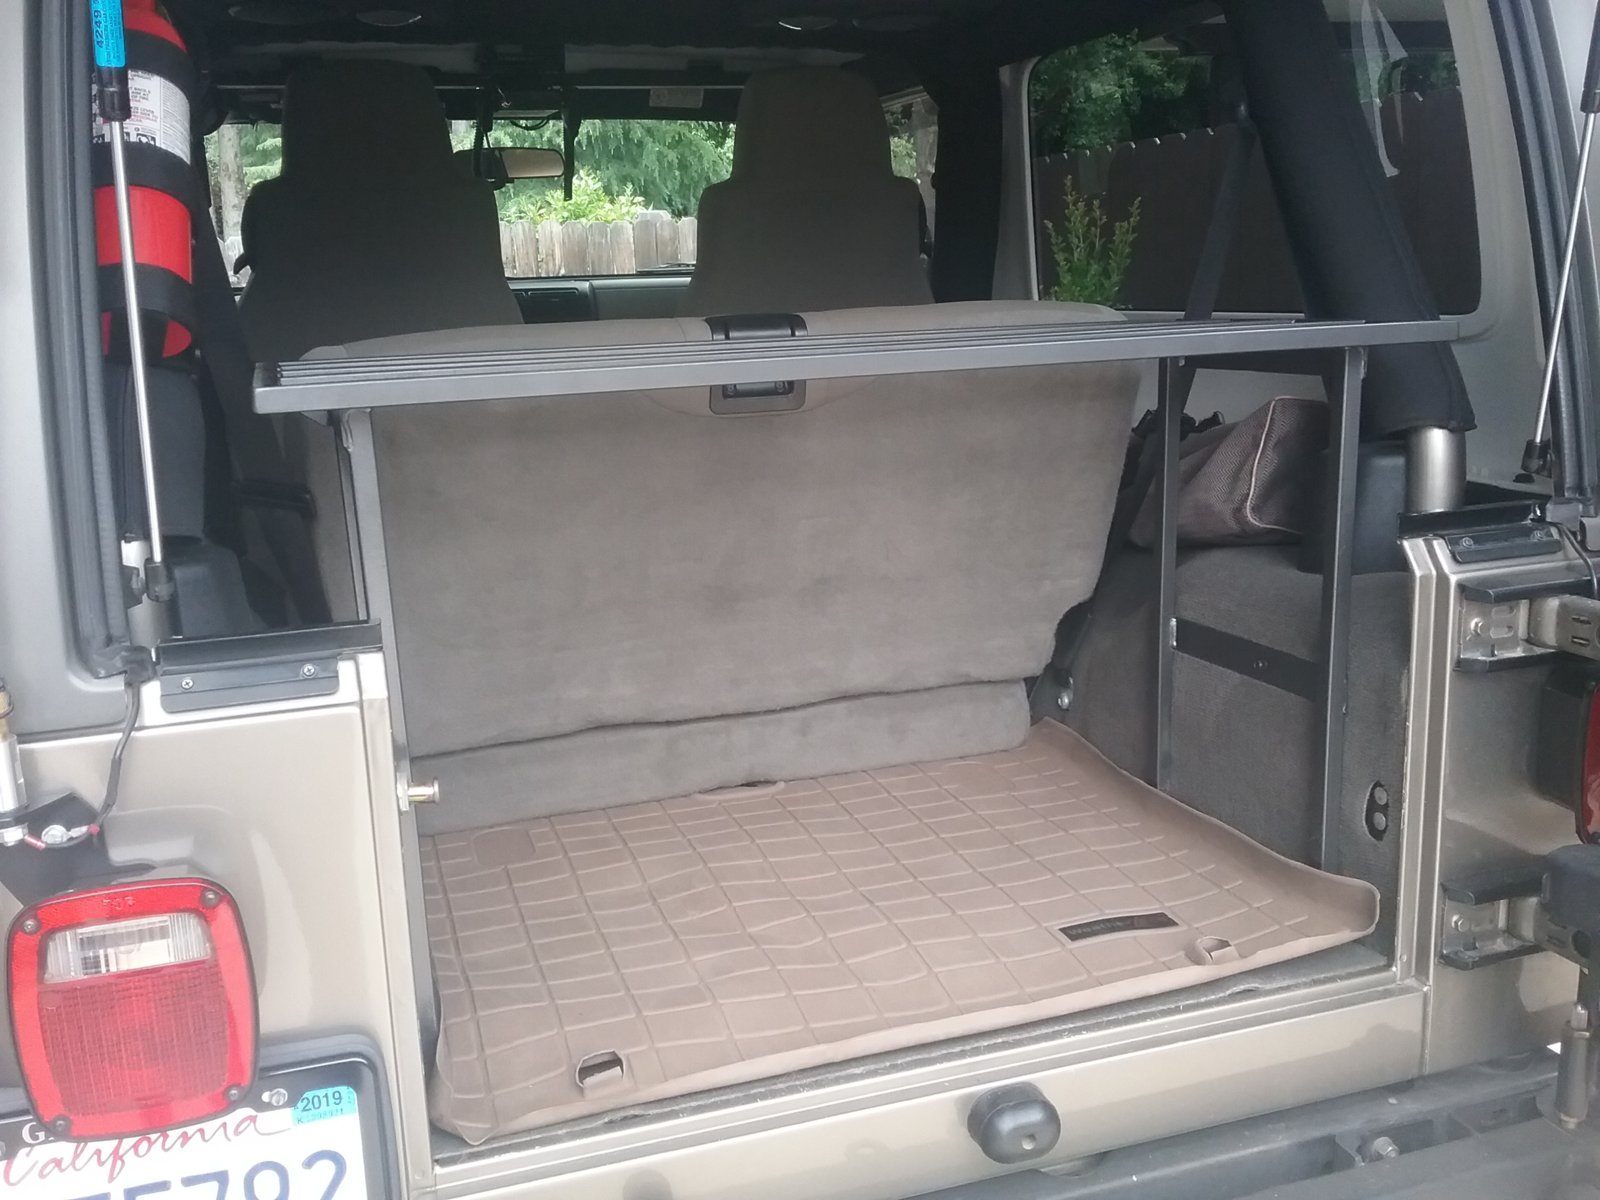 2018 Jeep Wrangler Interior >> DIY Interior Cargo Rack for LJ | Jeep Wrangler TJ Forum